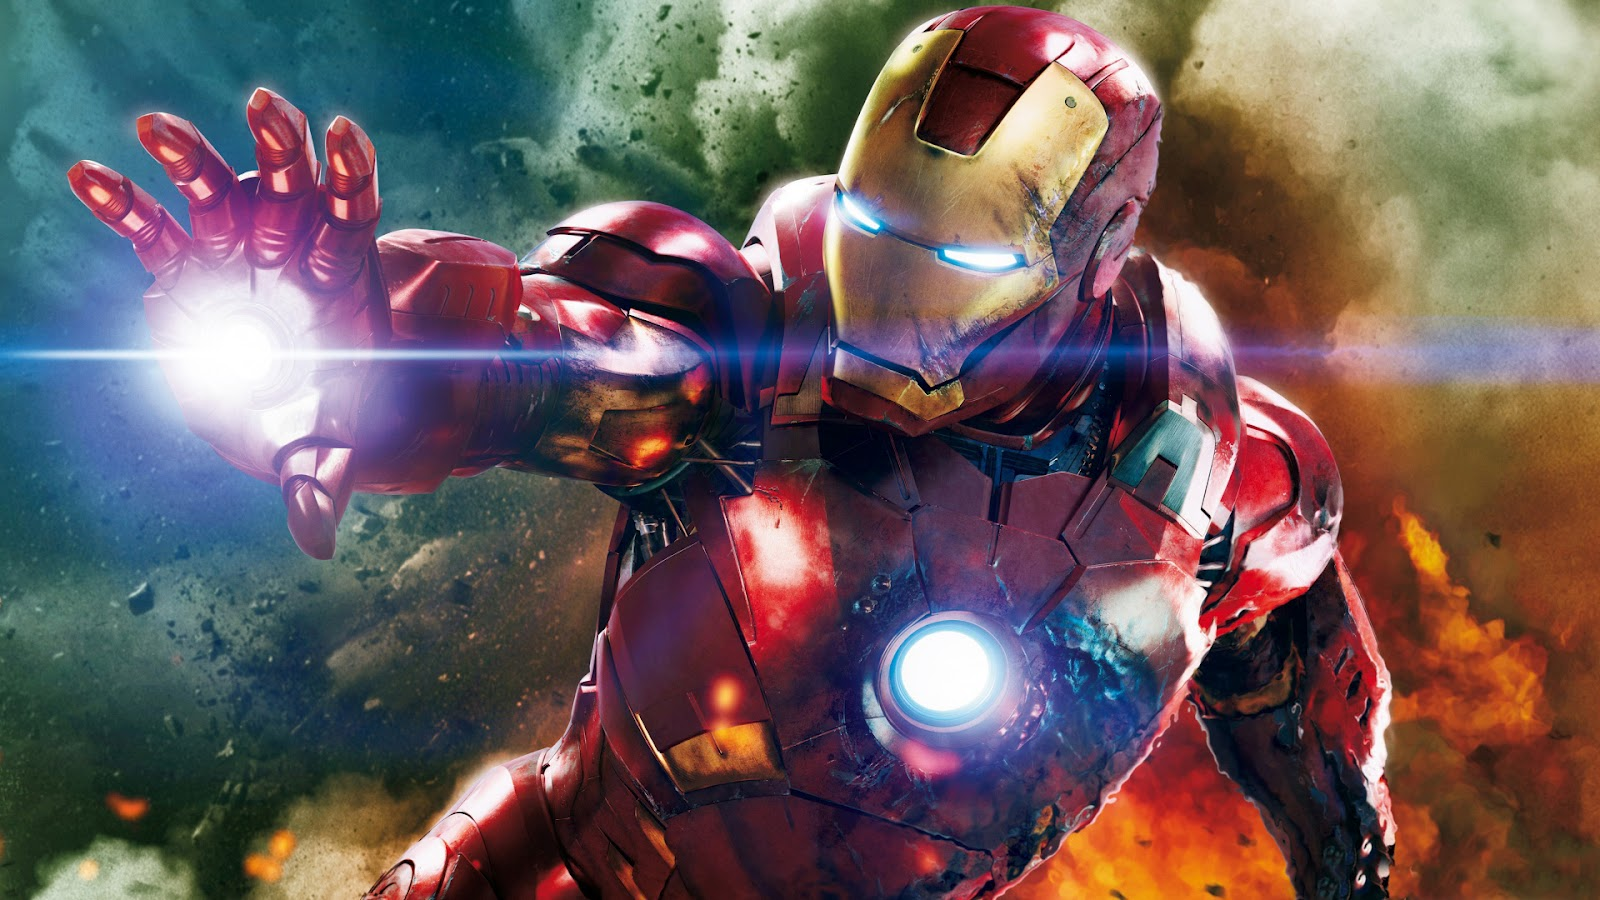 Wallpapers HD: Los Vengadores (Advengers) HD Wallpapers (Fondo de Pantalla) HD - Alta calidad ...